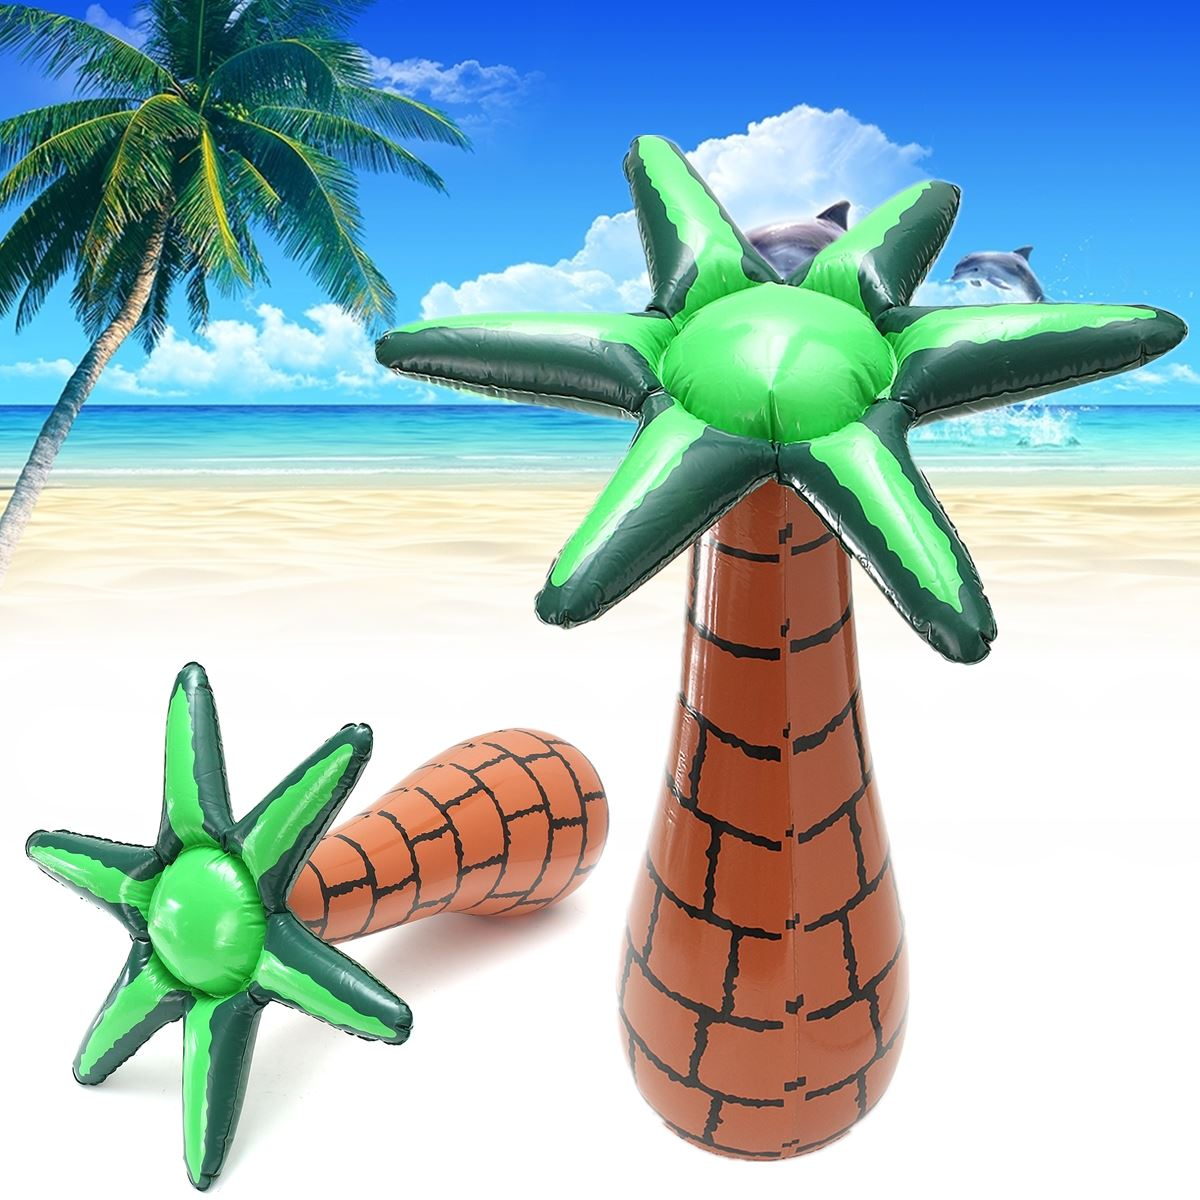 60cm Inflatable Floating Coconut Palms Tree Swimming Pool Beach Lawn Toy  Decor Summer Party Events DIY